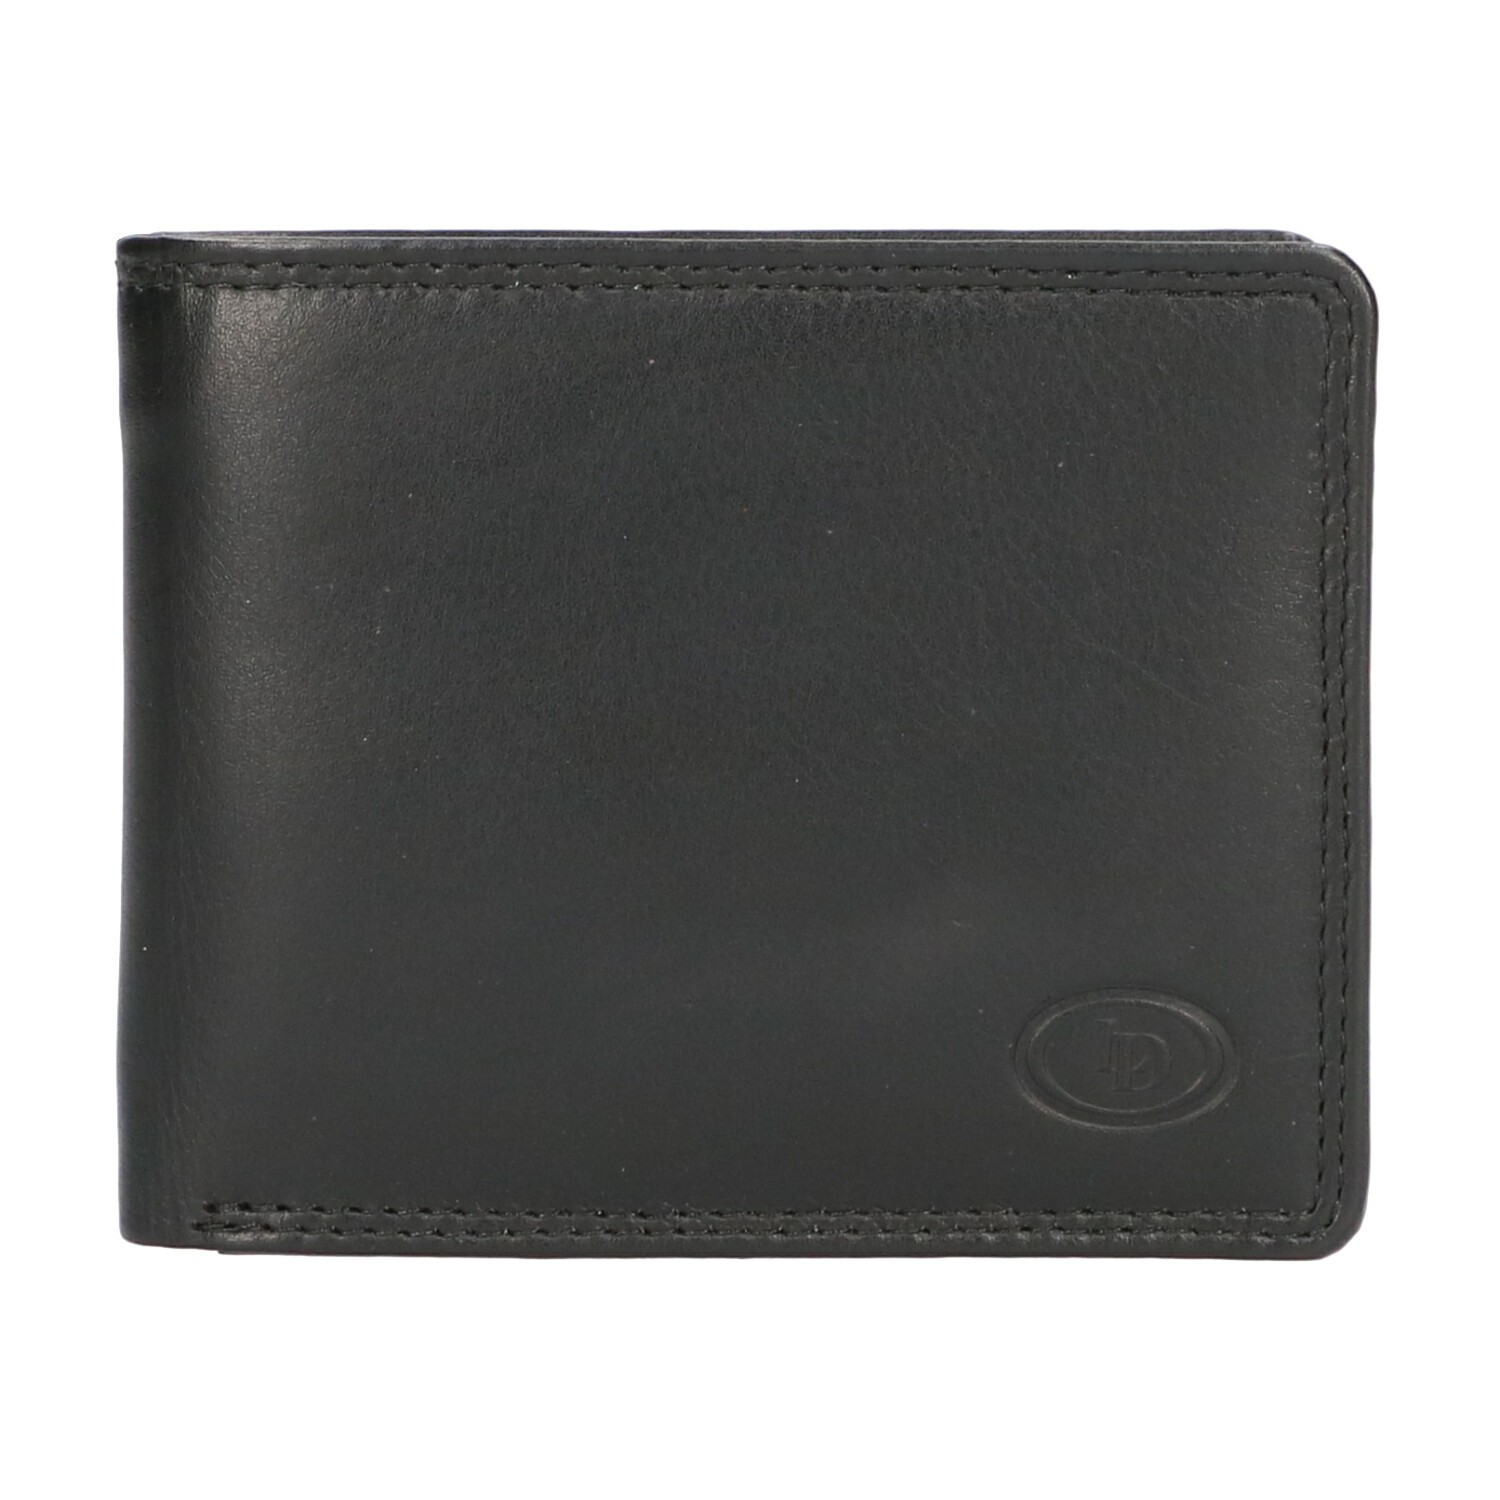 Leather Design Billfold AH 2755 Zwart